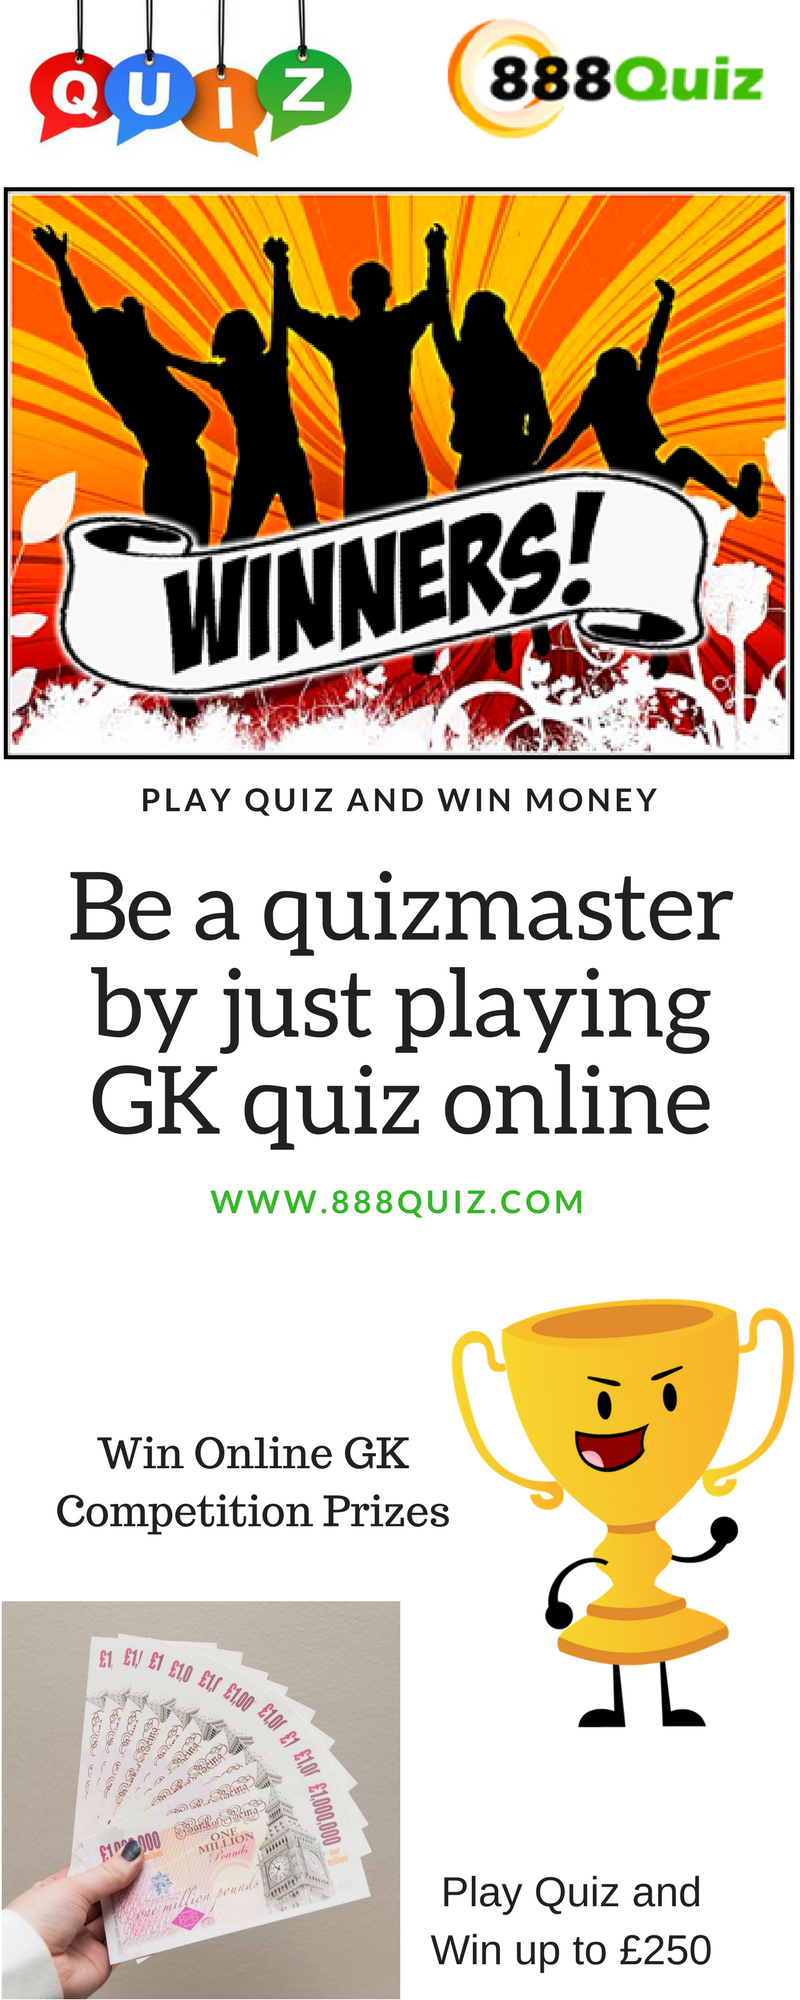 Play quizzes and win money